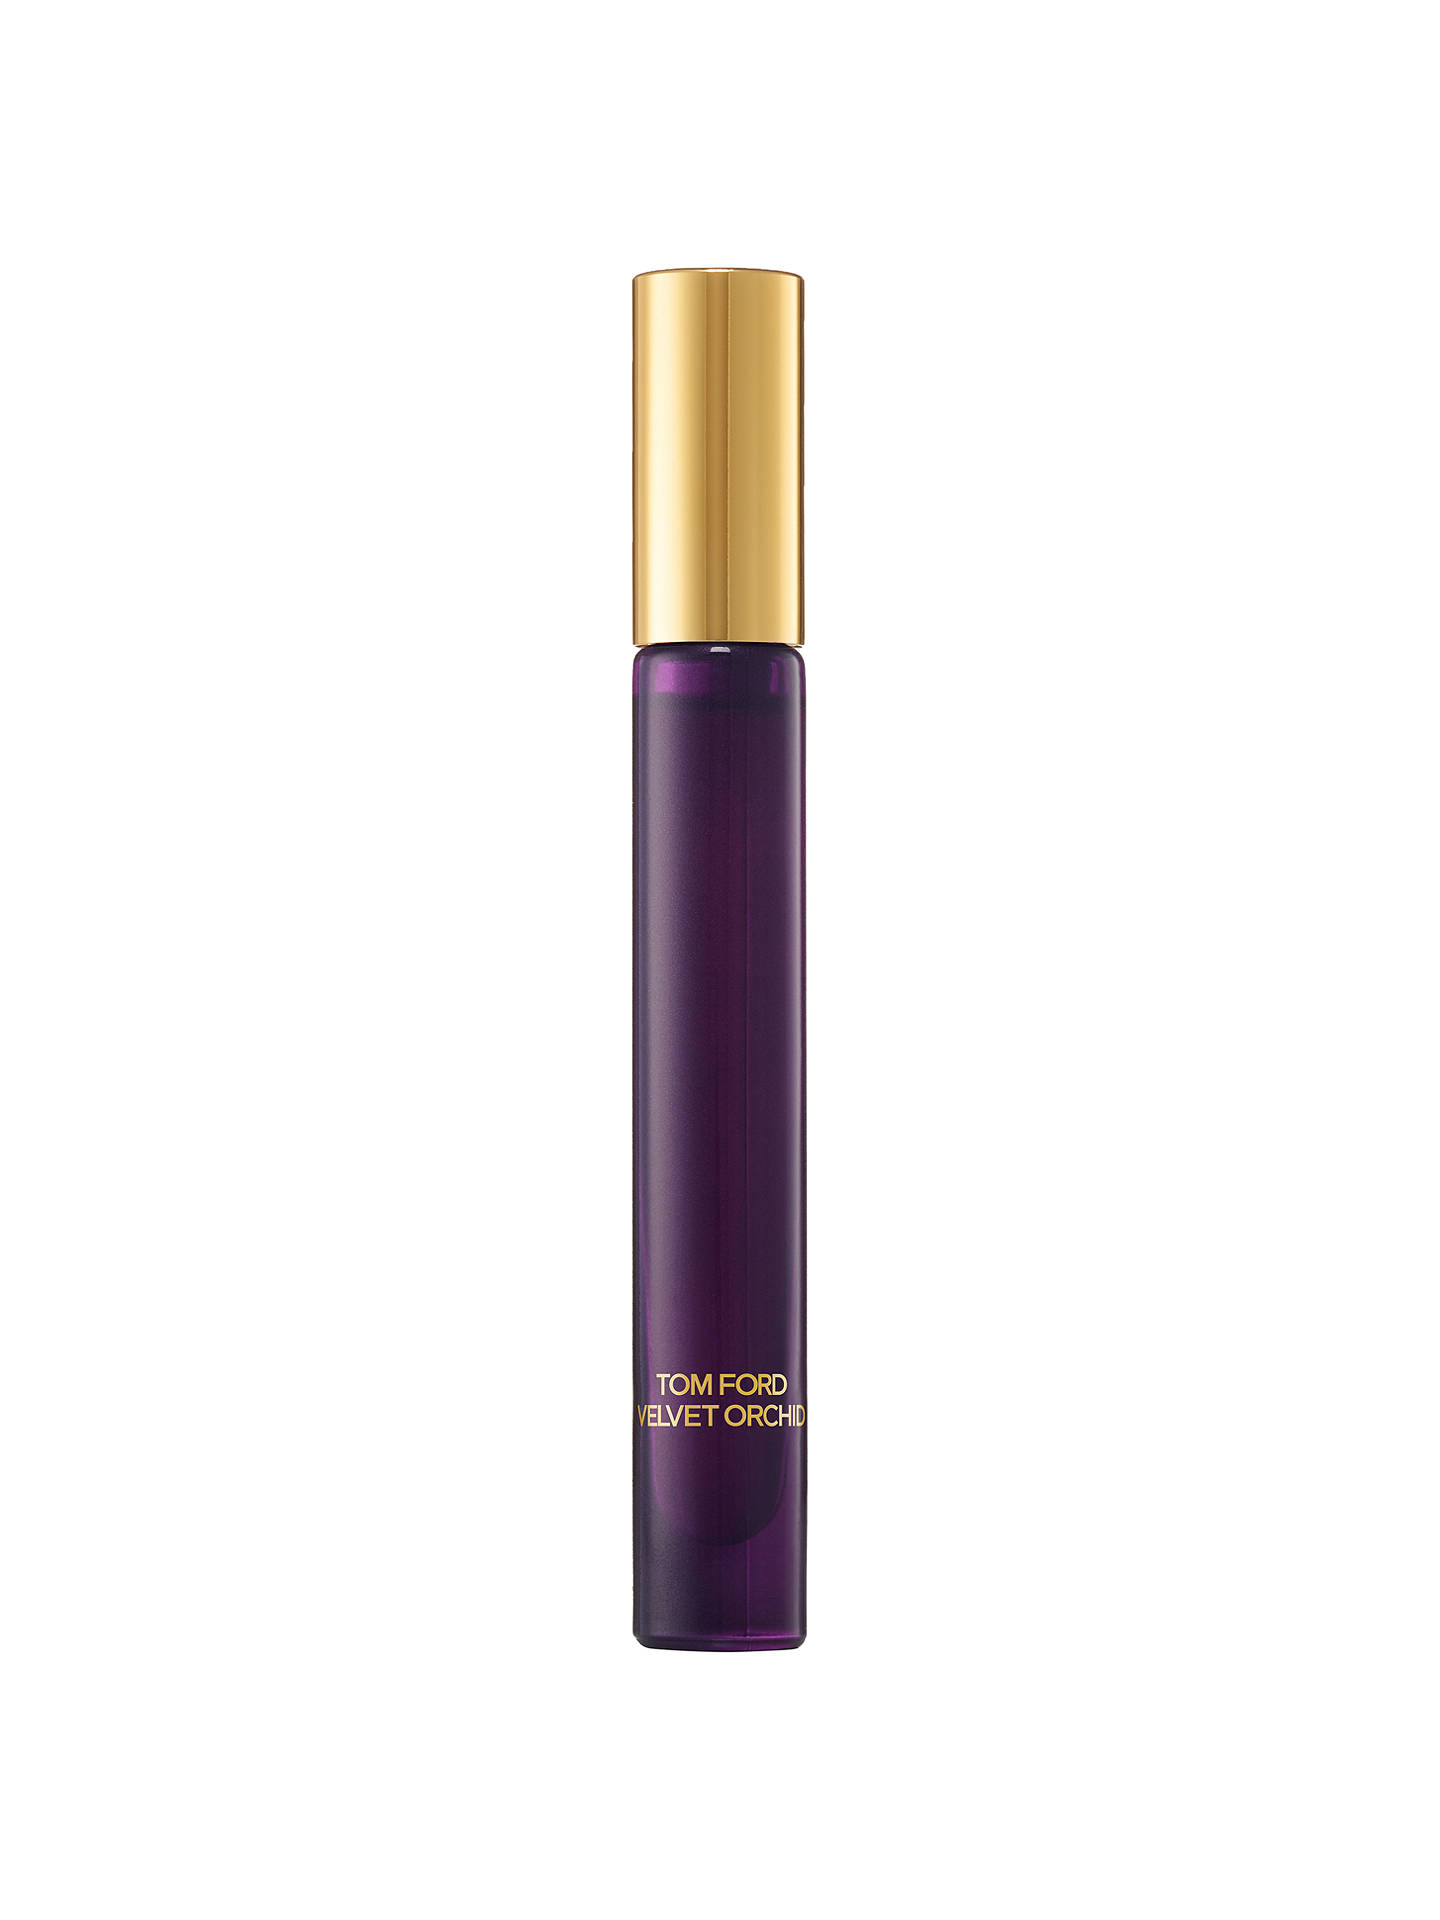 BuyTOM FORD Velvet Orchid Touch Point Eau de Parfum Rollerball Online at johnlewis.com